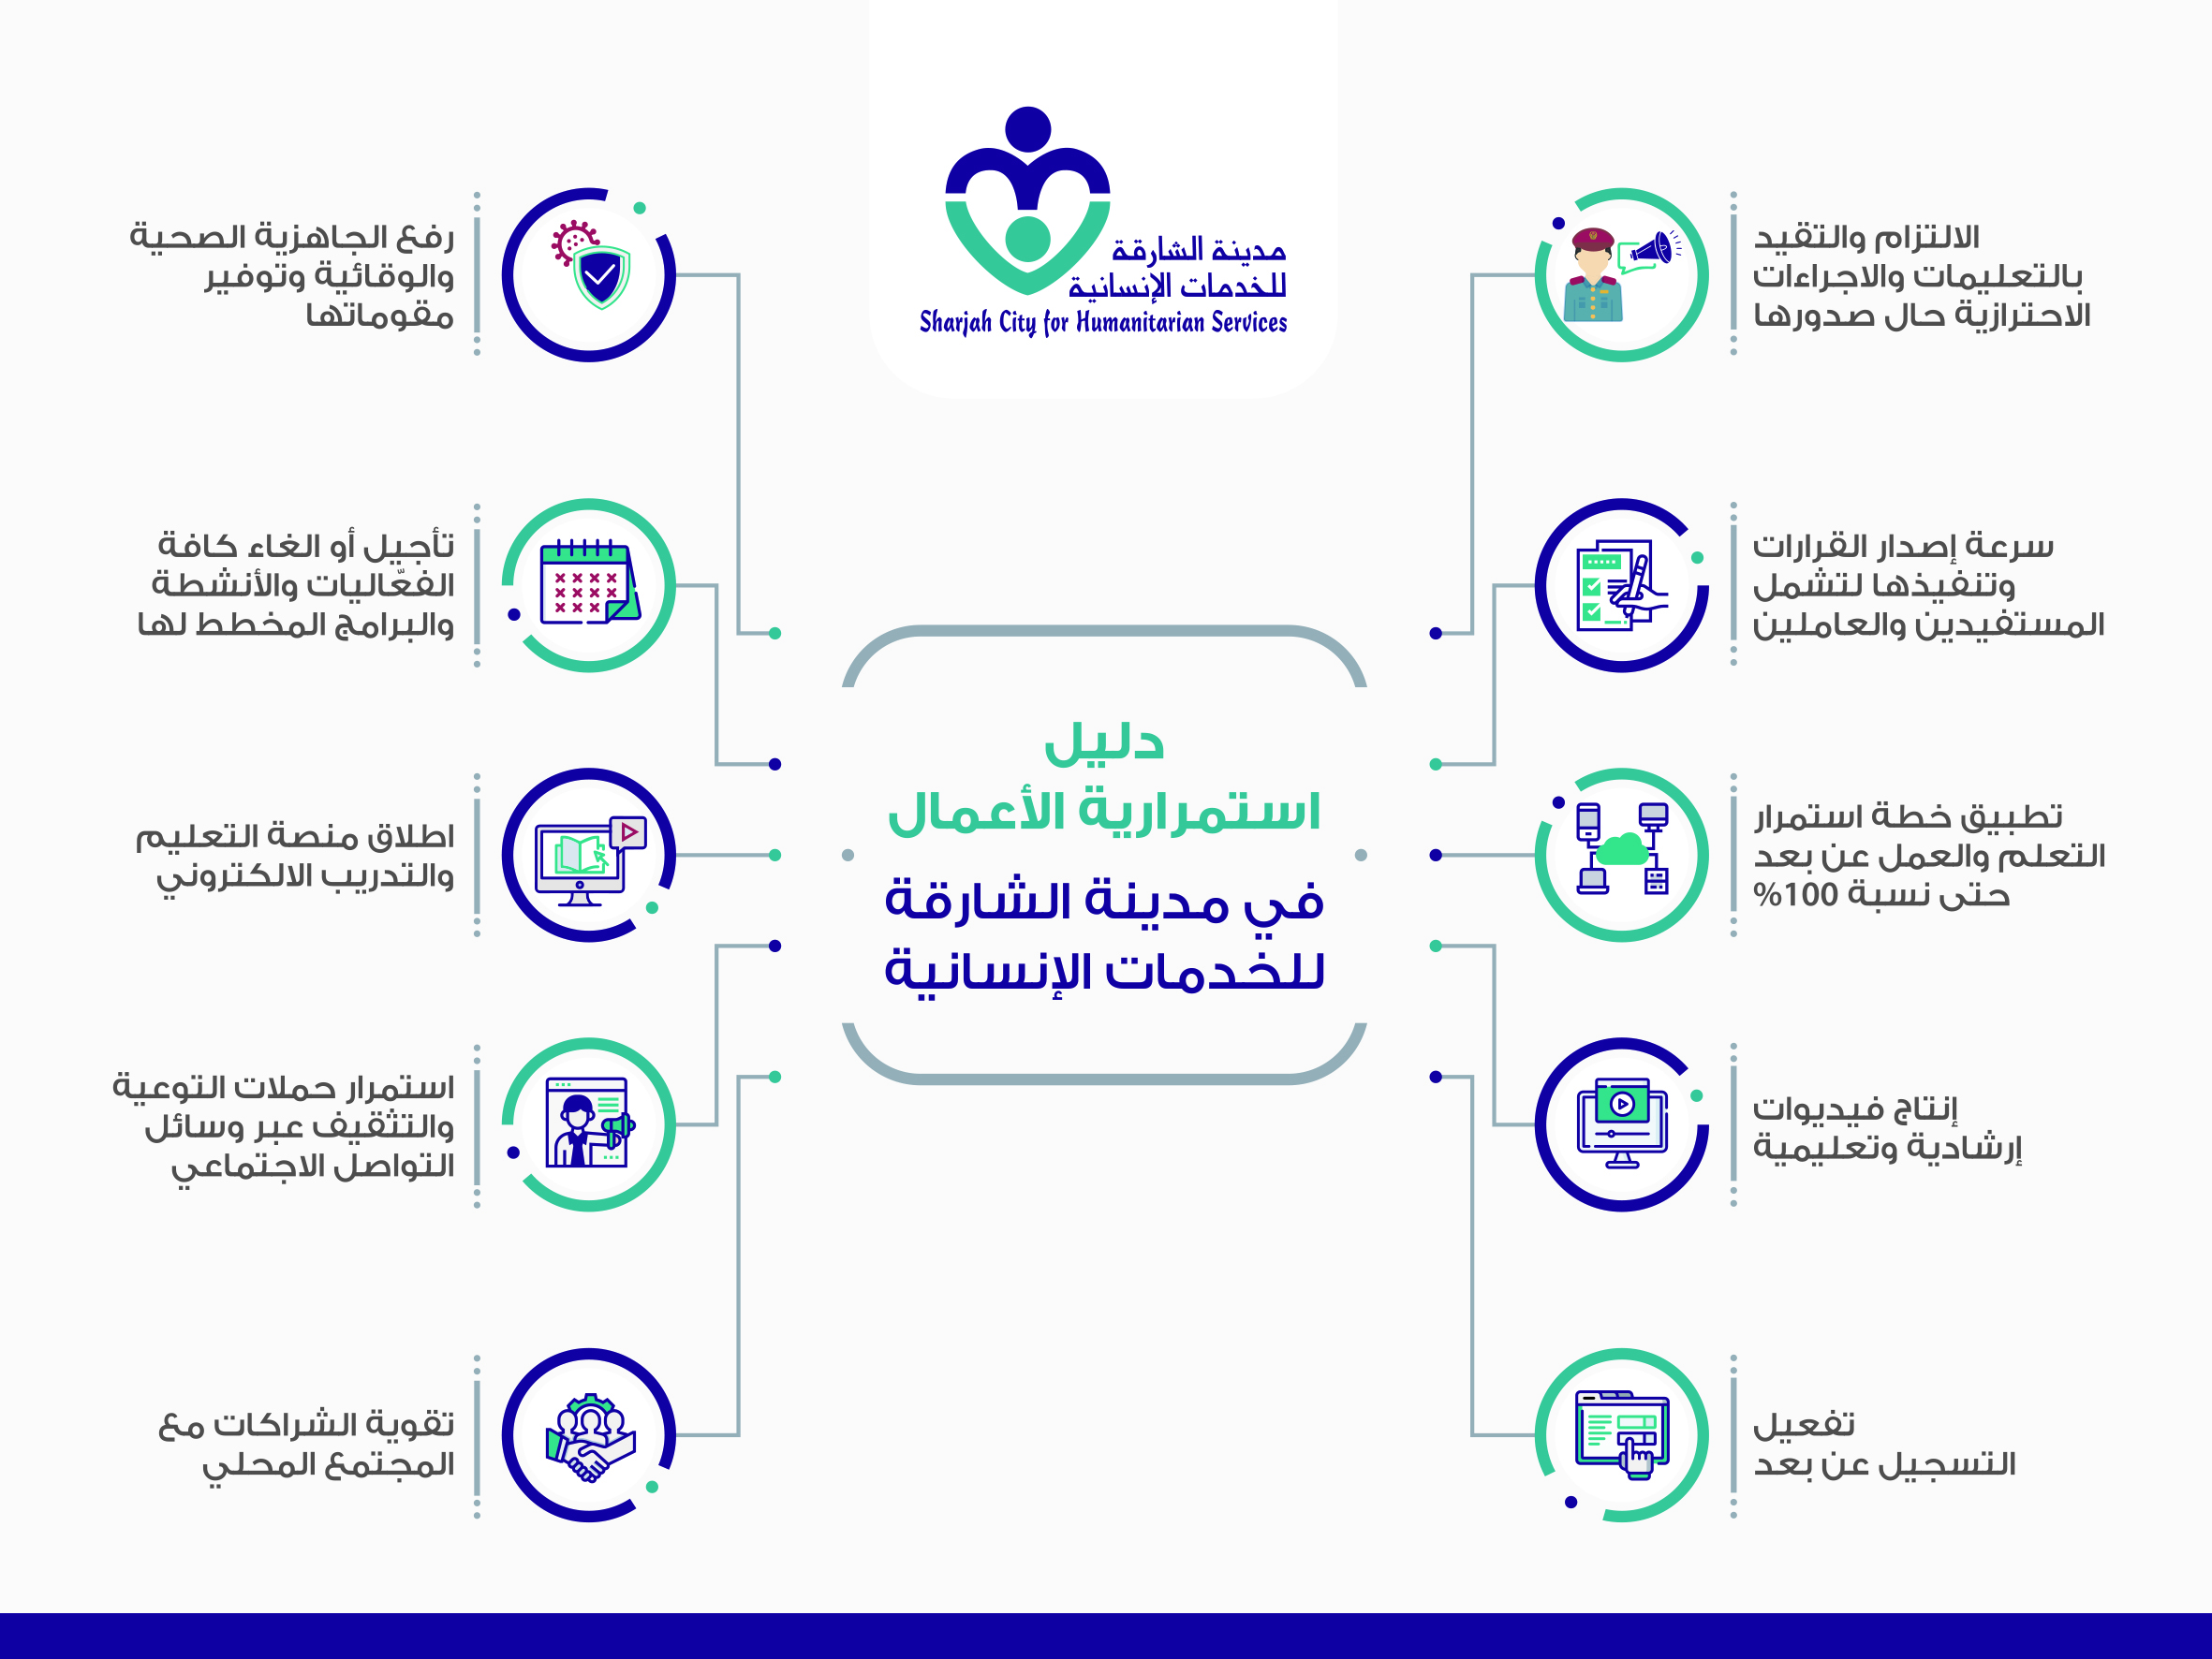 Sharjah City for Humanitarian Services released it at the beginning of the Corona crisis